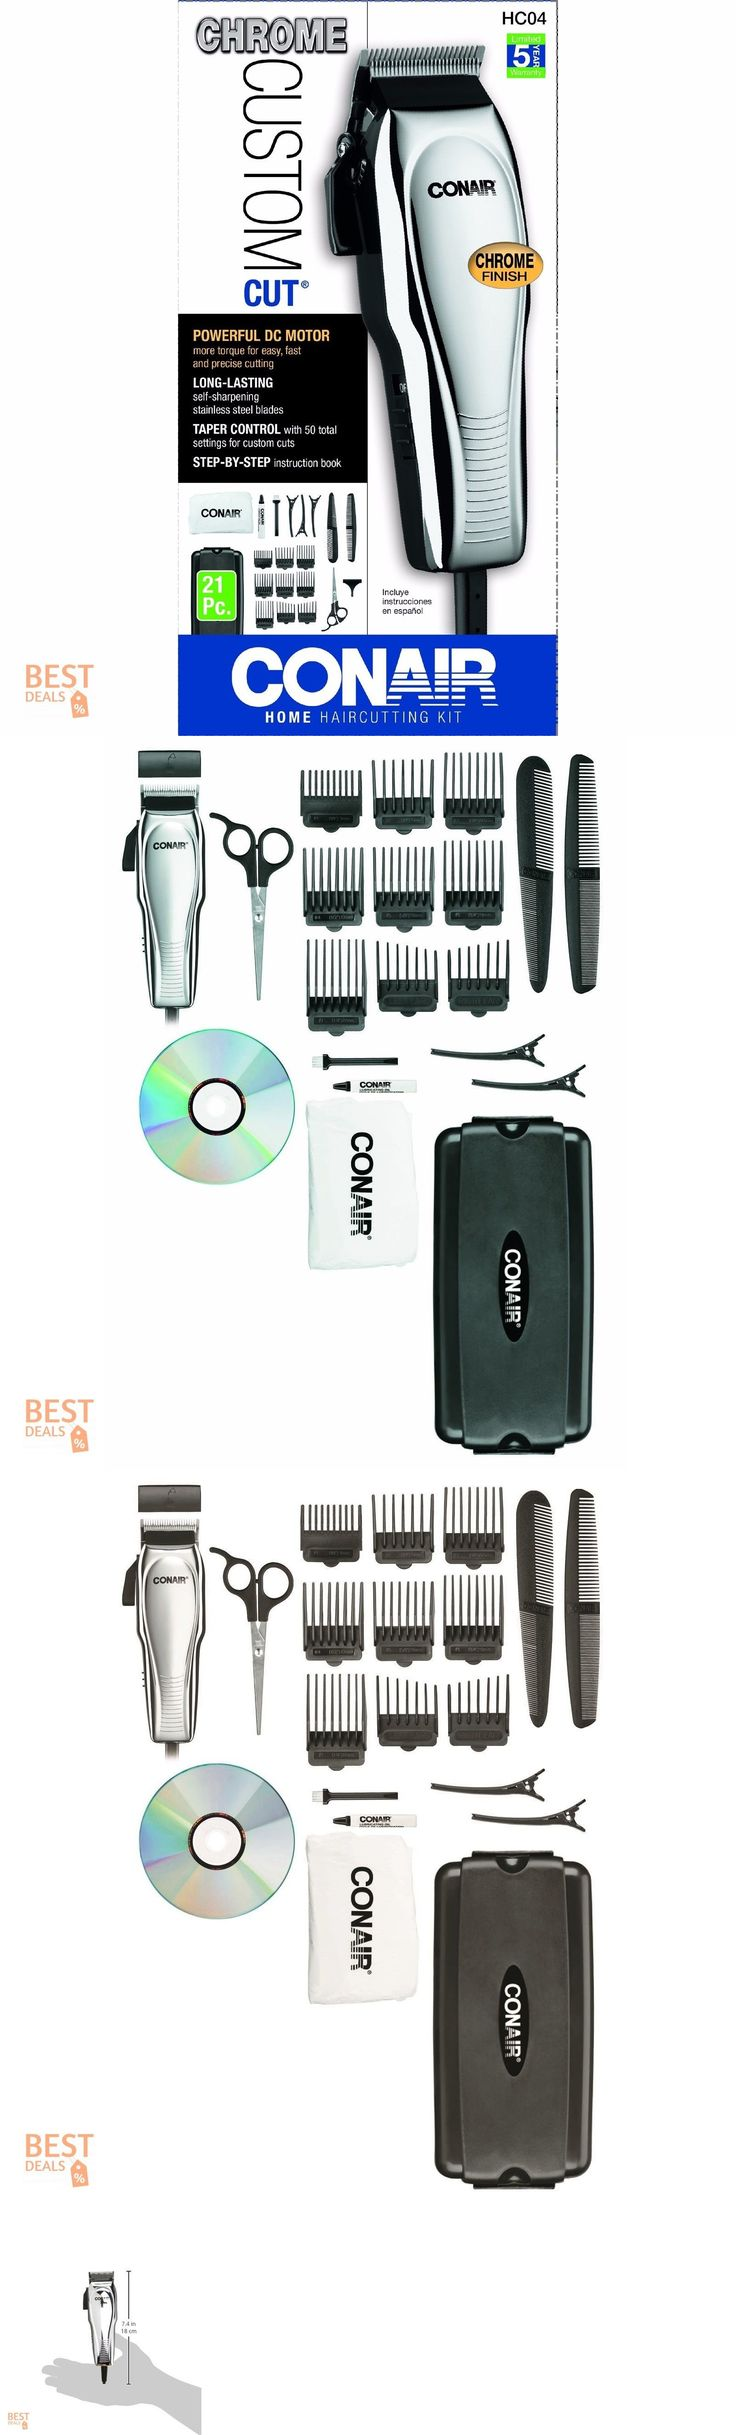 Shaving and Grooming Kits and Sets: Barber Clipper Set Hair Cut Machine Professional Electric Trimmer Kit Beard Care -> BUY IT NOW ONLY: $32.99 on eBay!